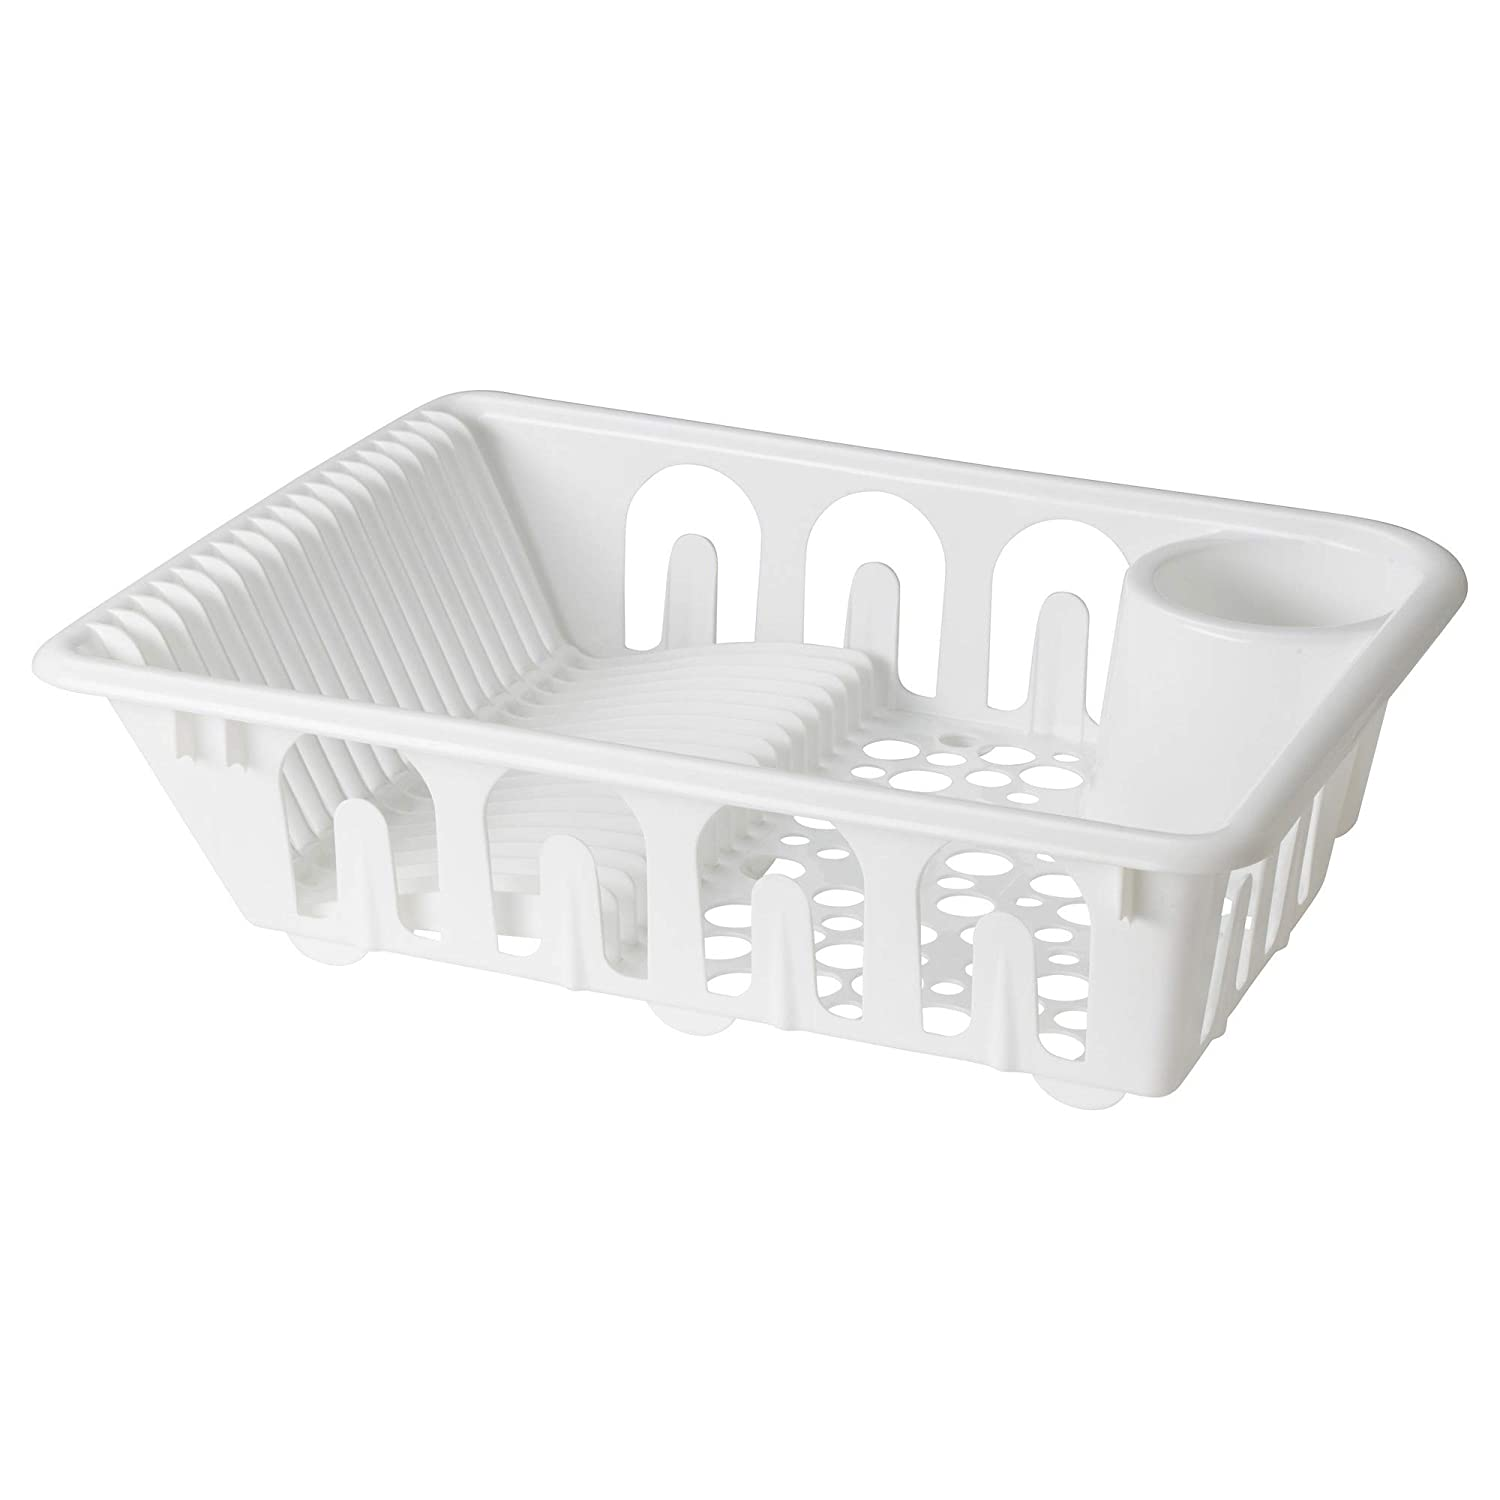 ebd4b824b7eb Amazon.com: IKEA 401.769.50 Flundra Dish Drainer, White: Kitchen & Dining